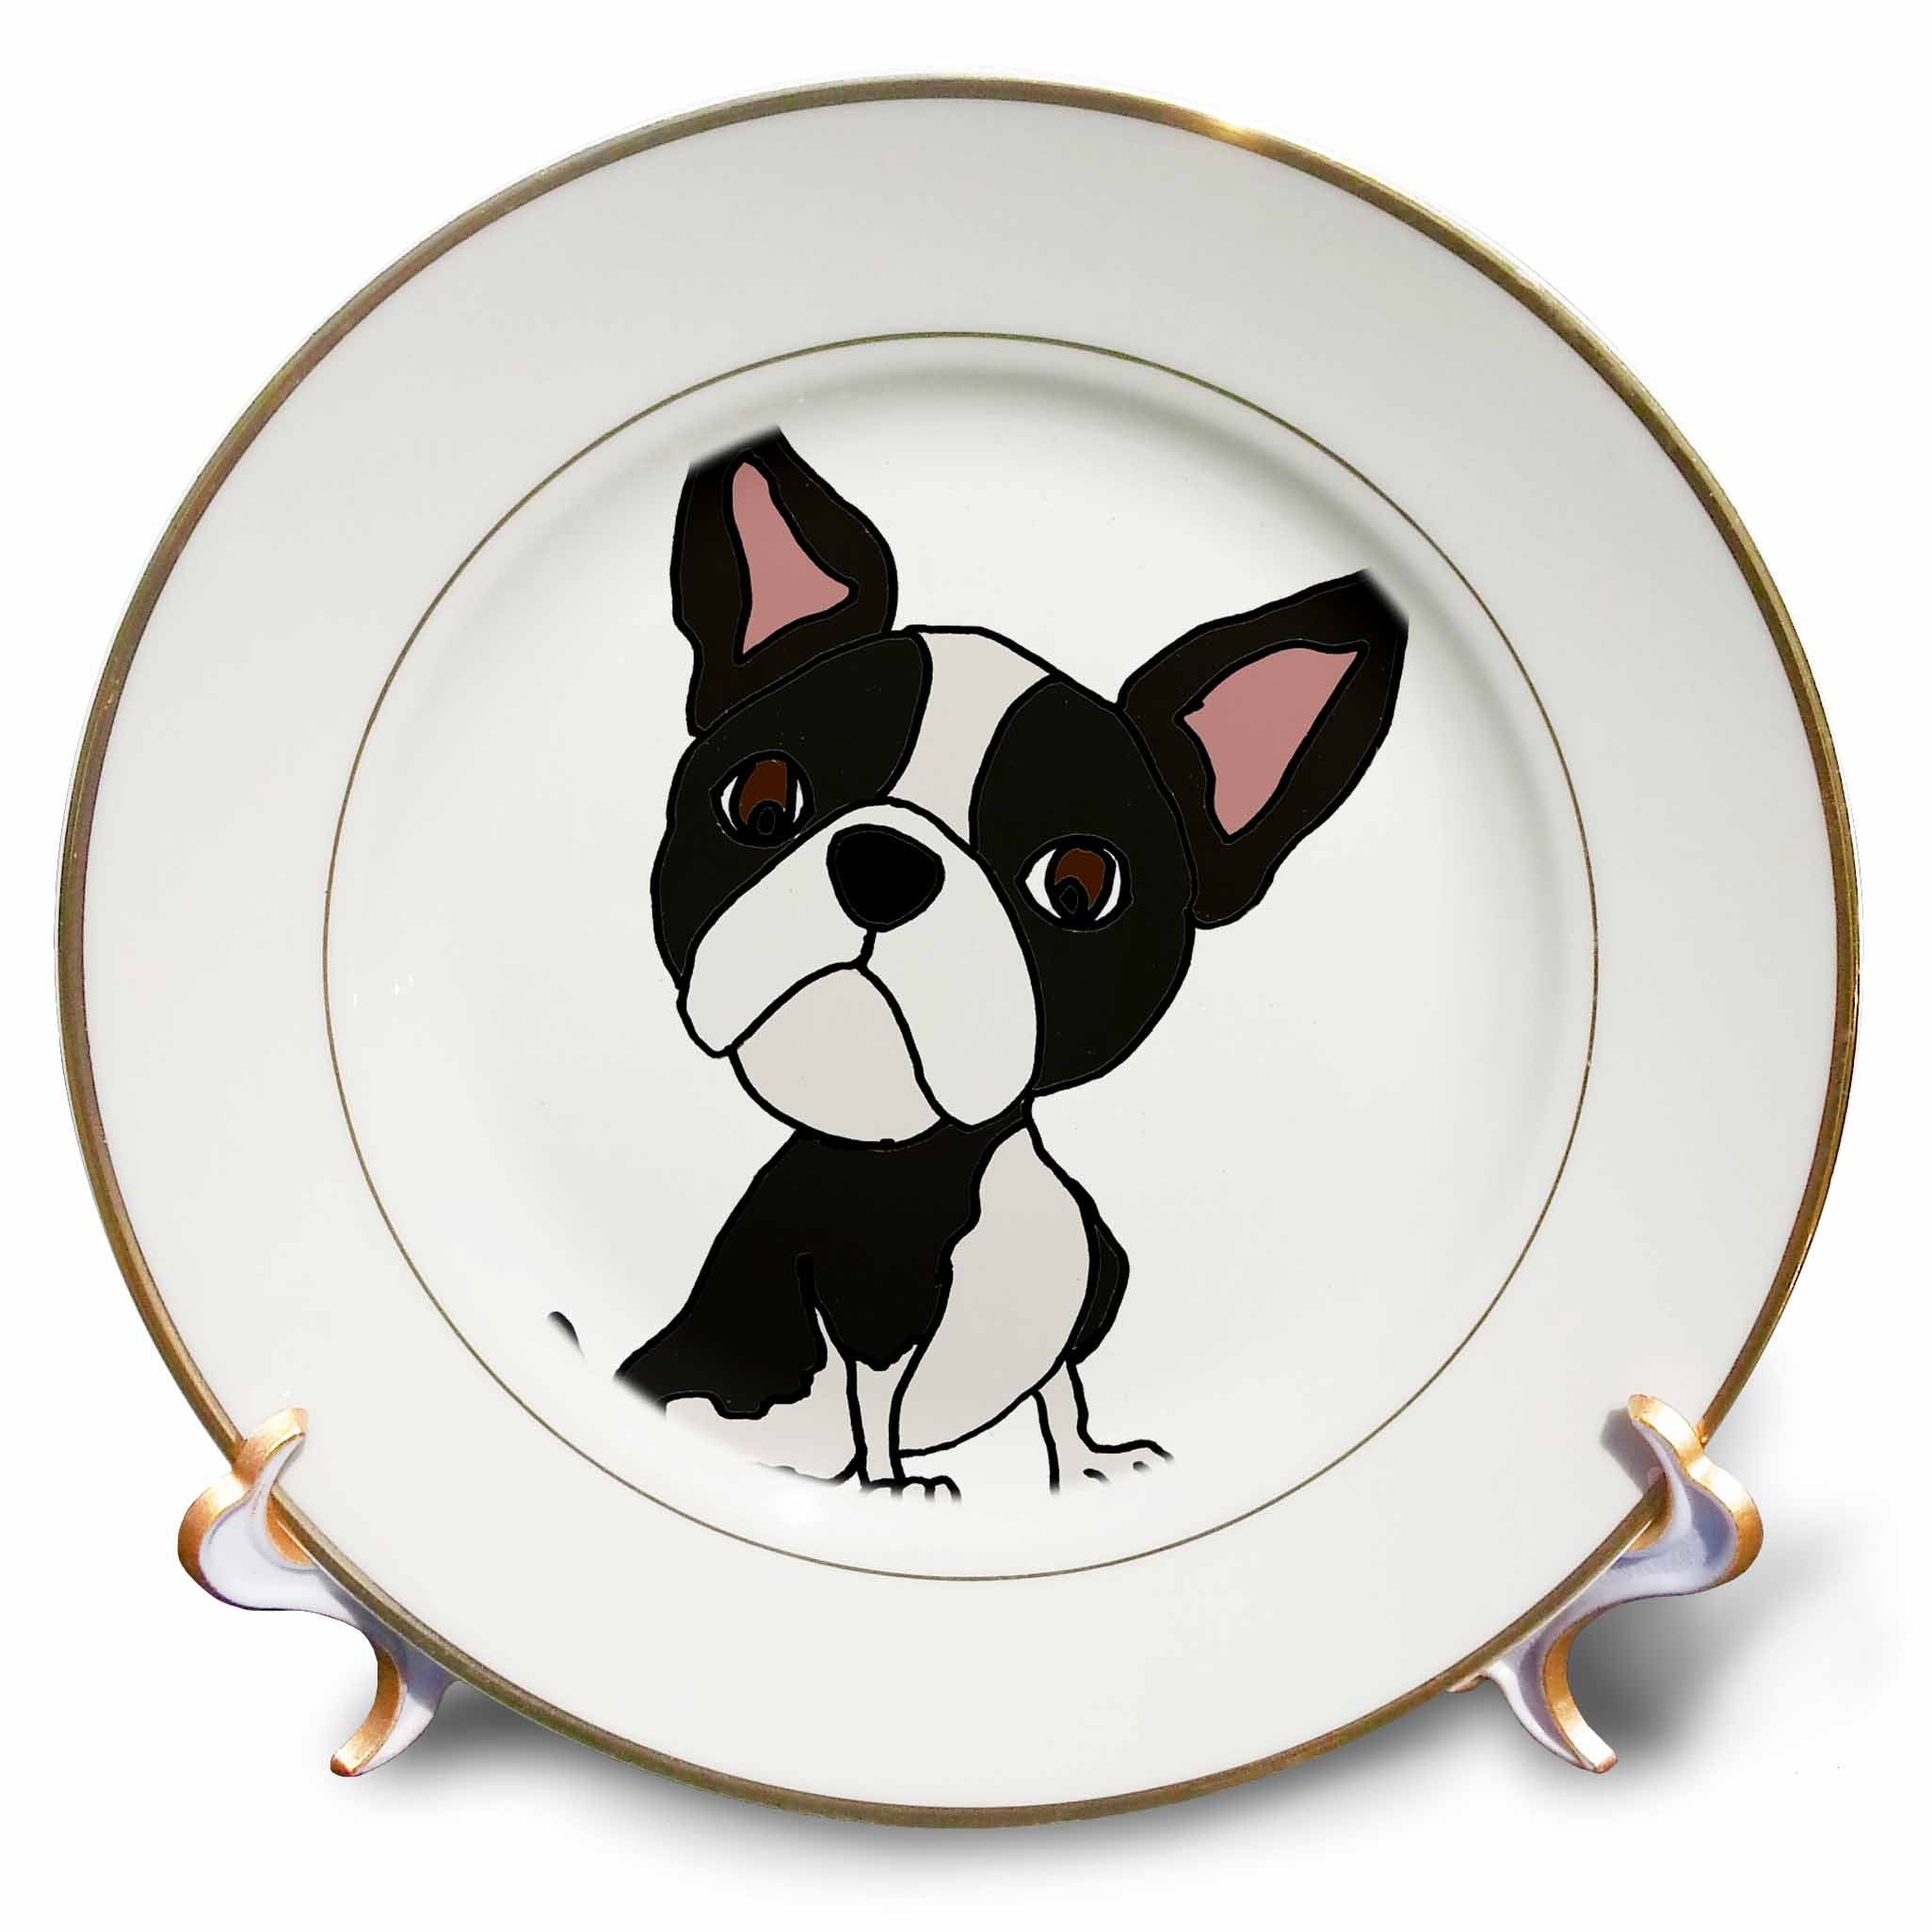 3dRose Funny Cute Boston Terrier Puppy Dog Art Cartoon Porcelain Plate, by 3dRose (Image #1)